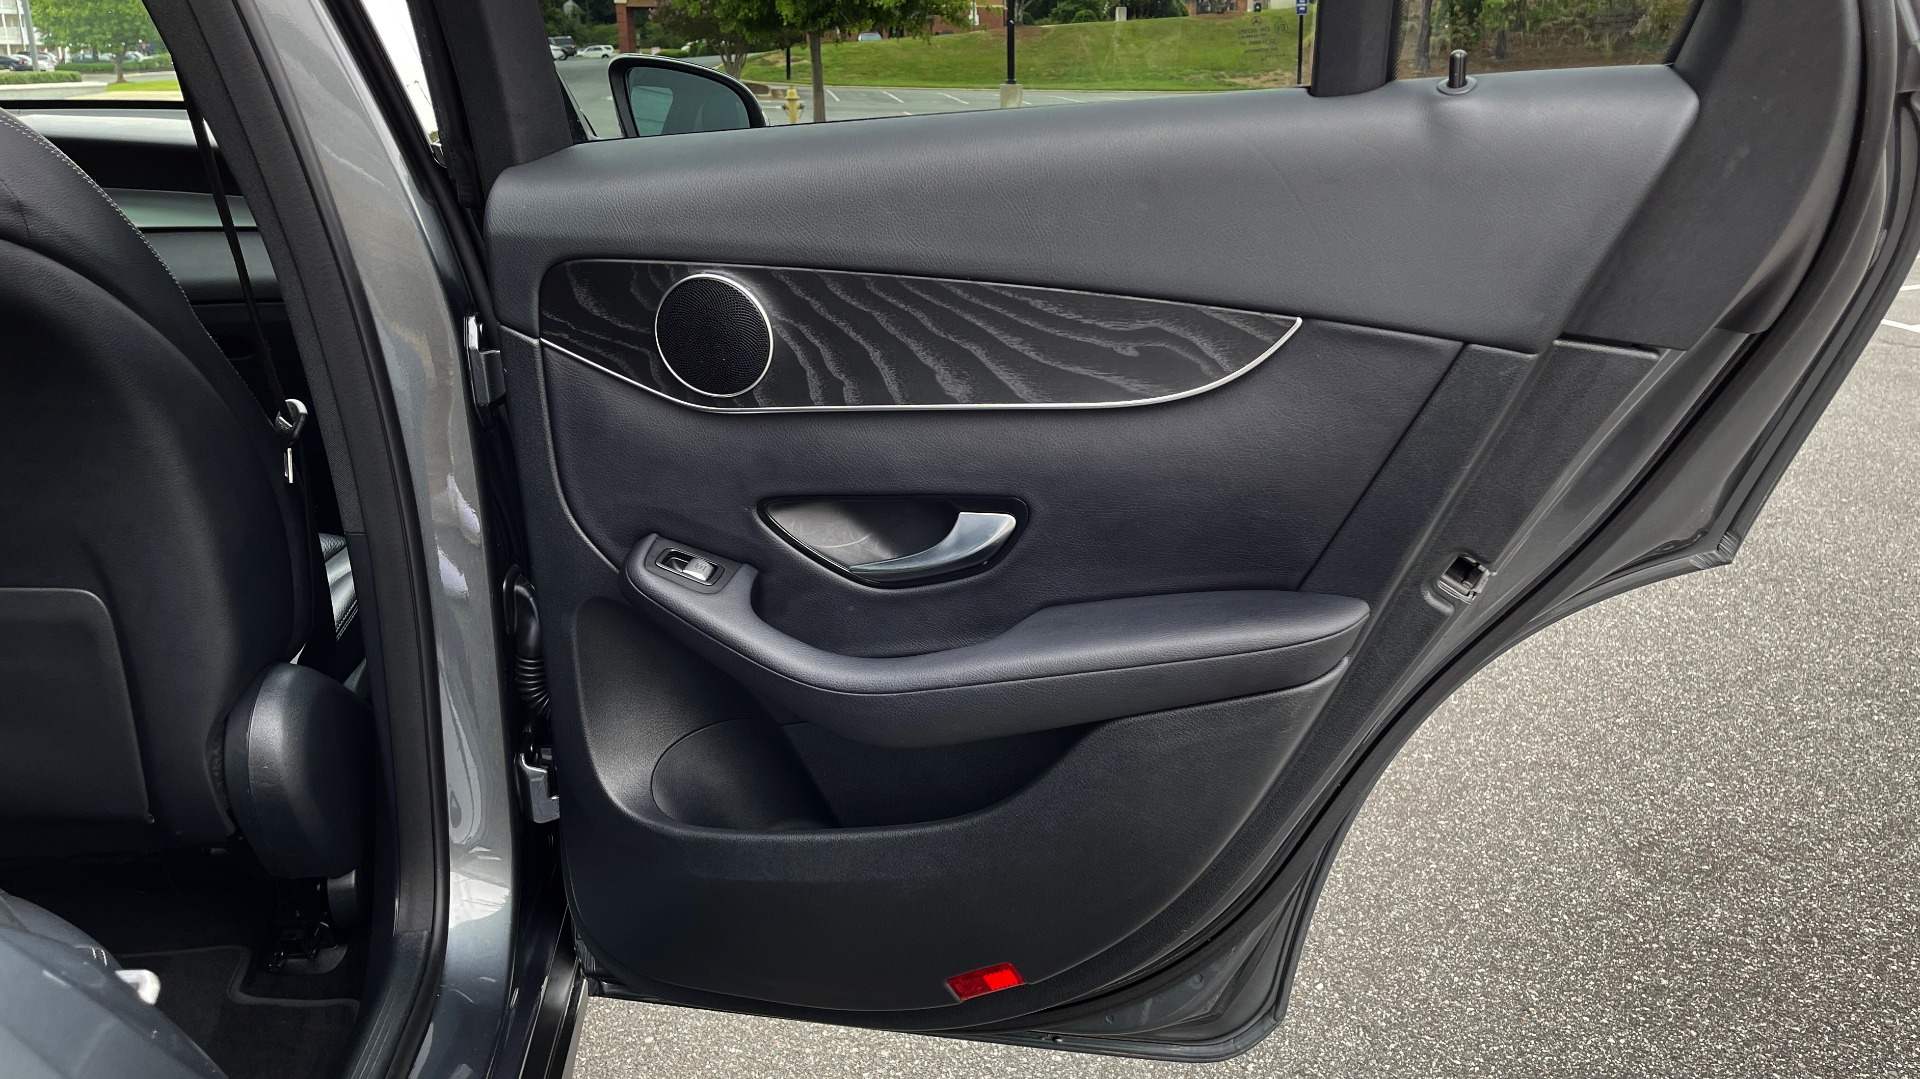 Used 2018 Mercedes-Benz GLC 300 4MATIC PREMIUM / PANO-ROOF / HTD STS / APPLE / REARVIEW for sale $34,295 at Formula Imports in Charlotte NC 28227 54